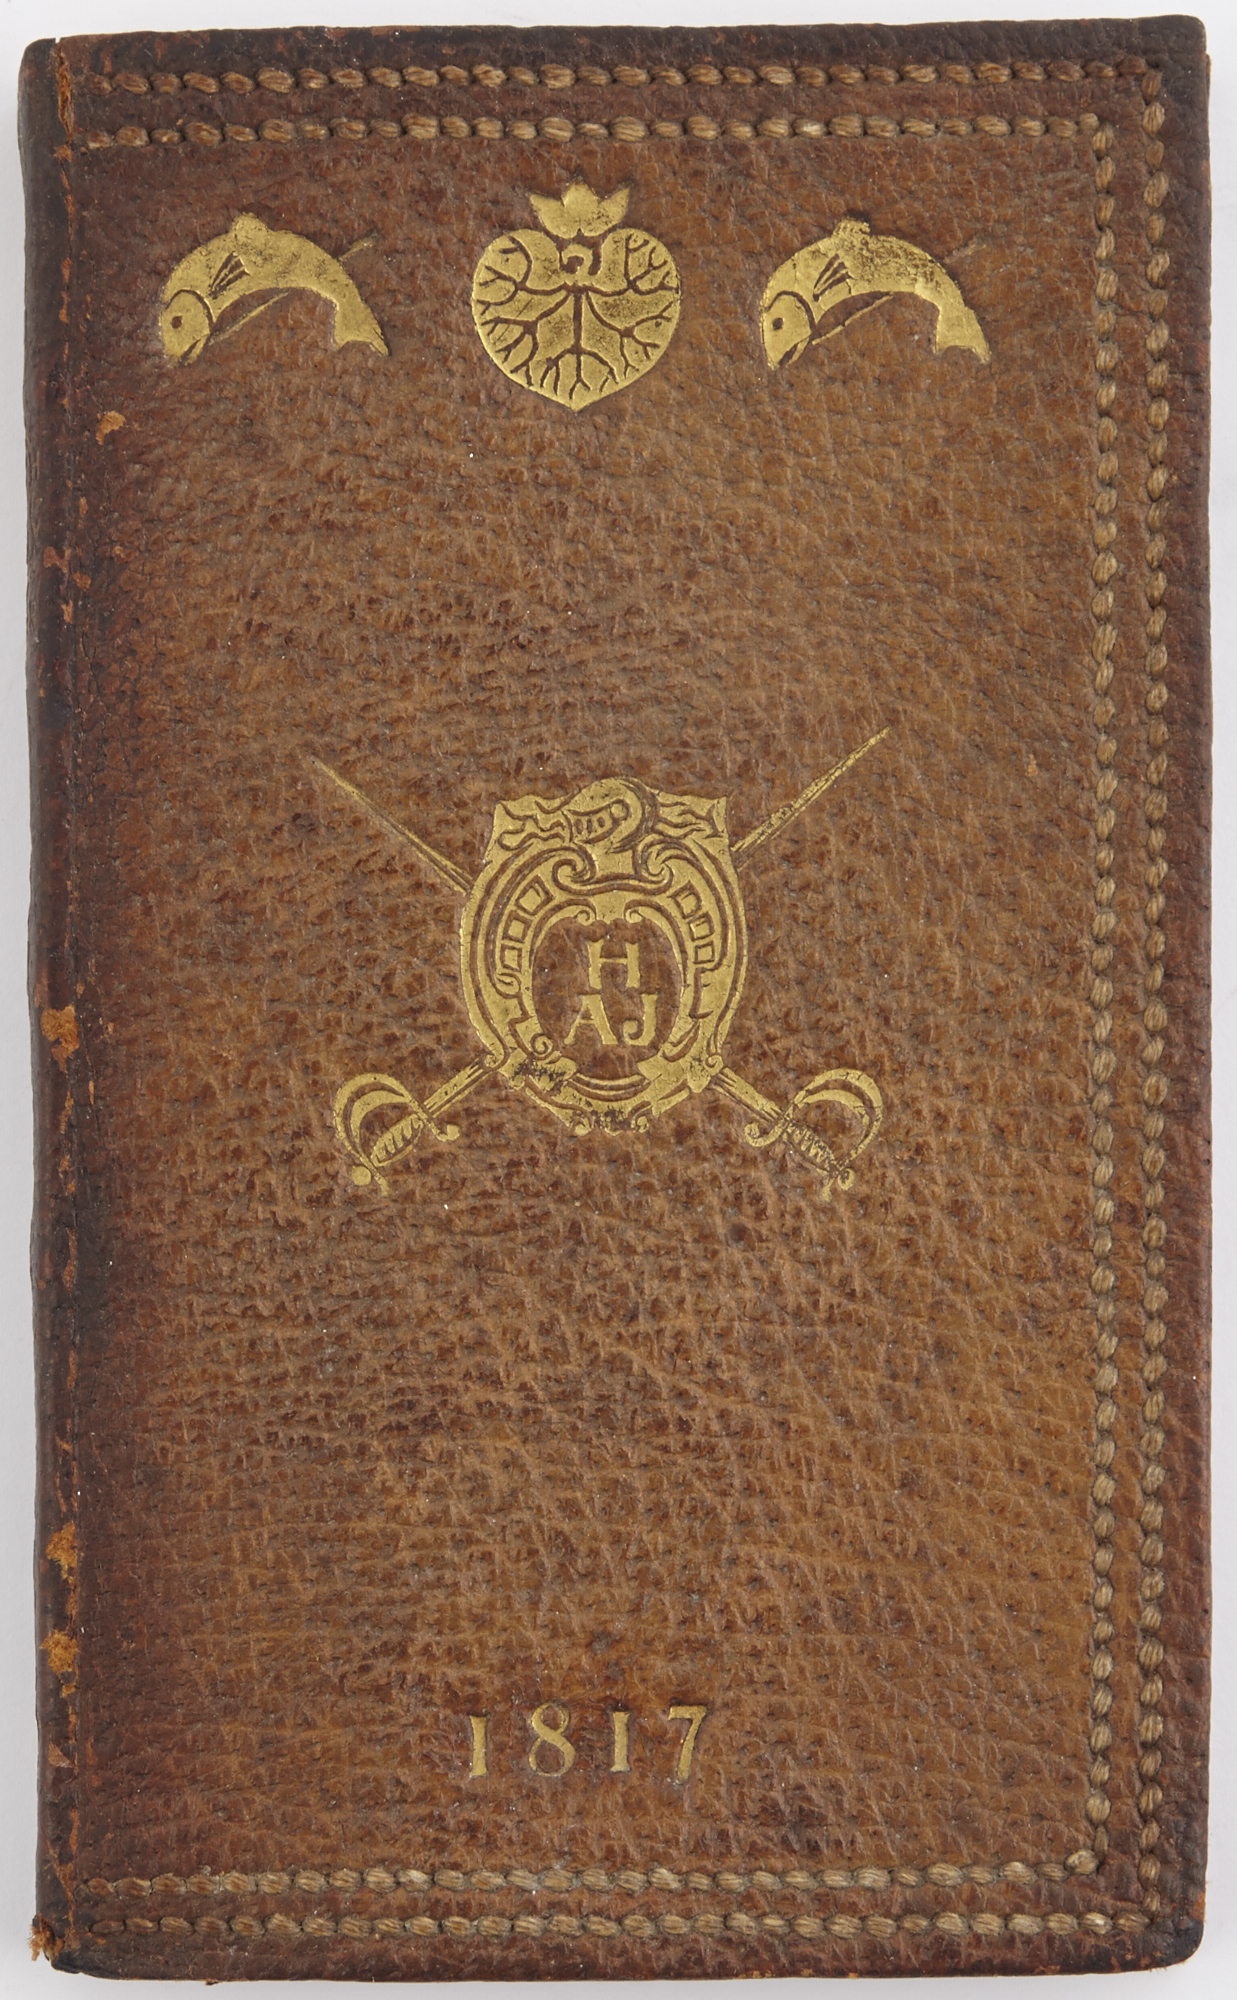 Lot image - [BINDING]  The North Country Angler; Or, The Art of Angling: As practised in the Northern Counties of England.